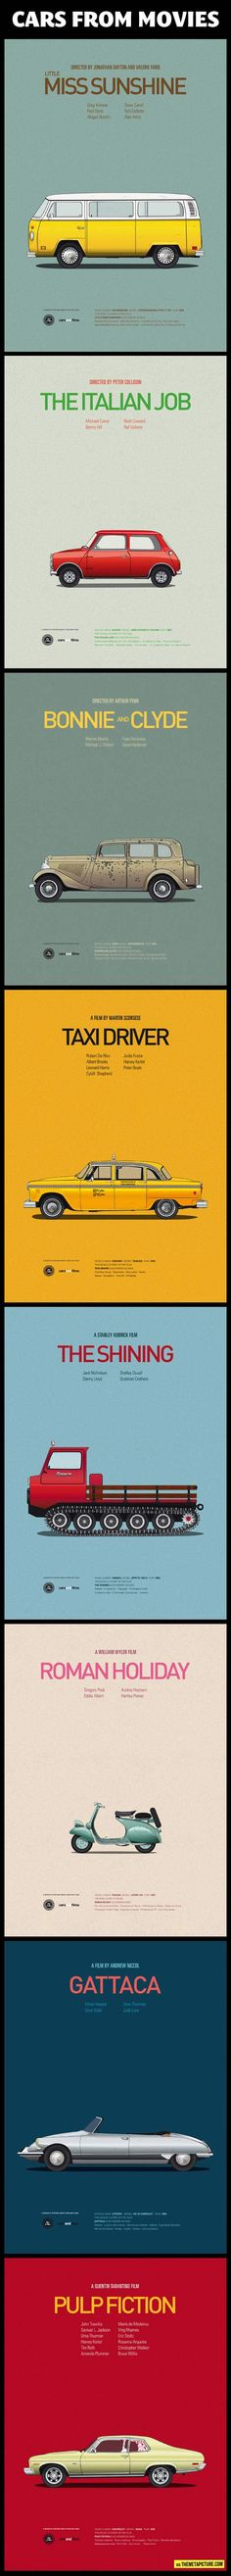 Cars from movies... - The Meta Picture